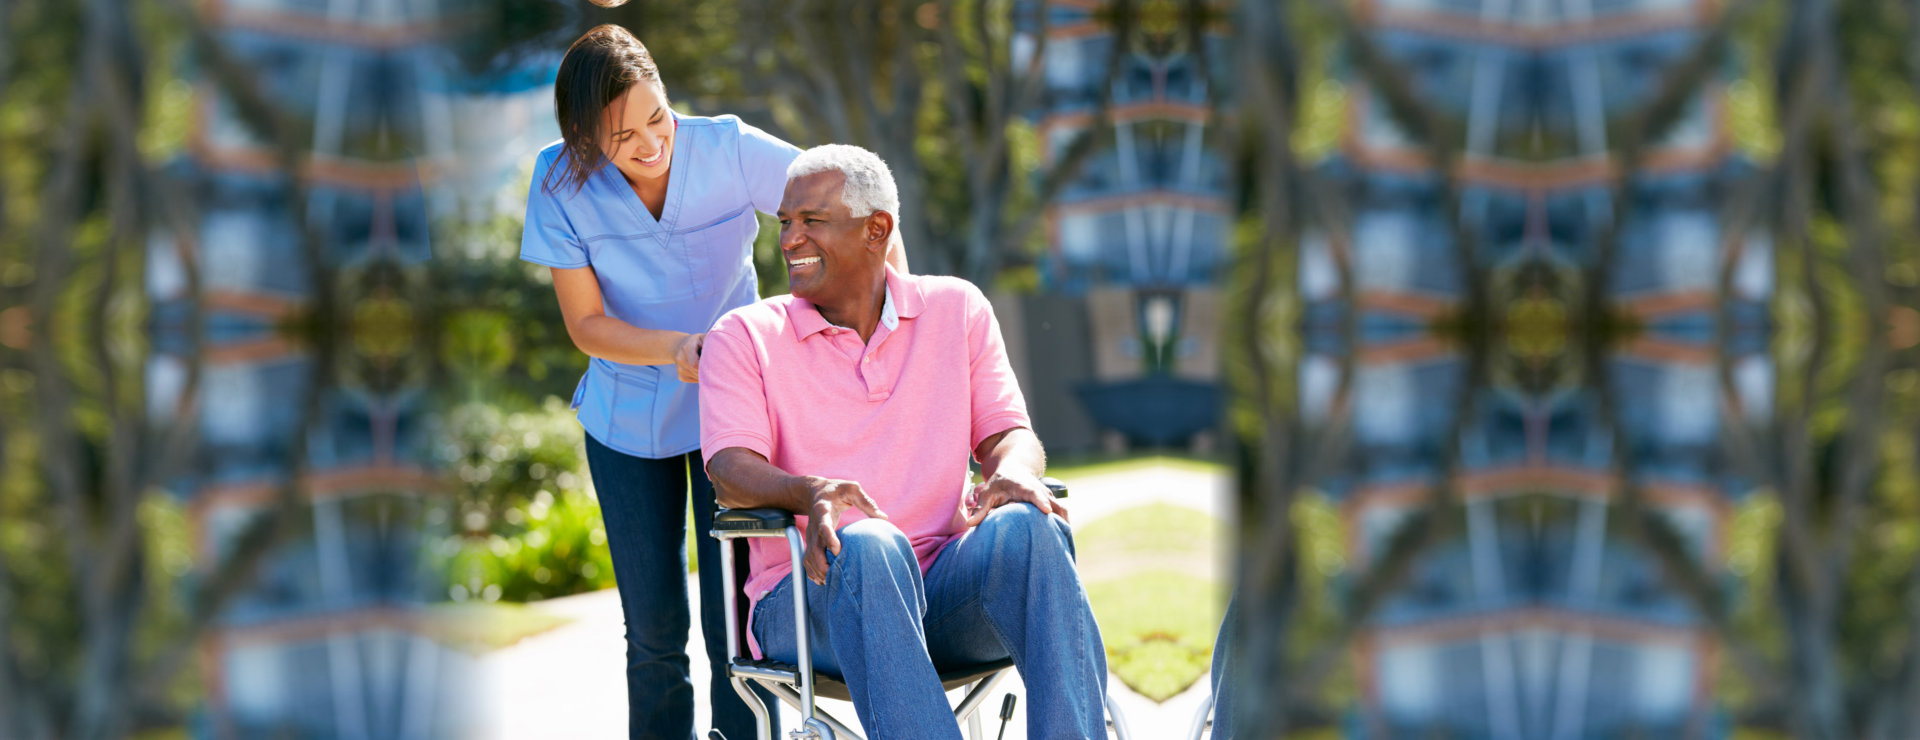 caregiver and elderly man in wheelchair smiling